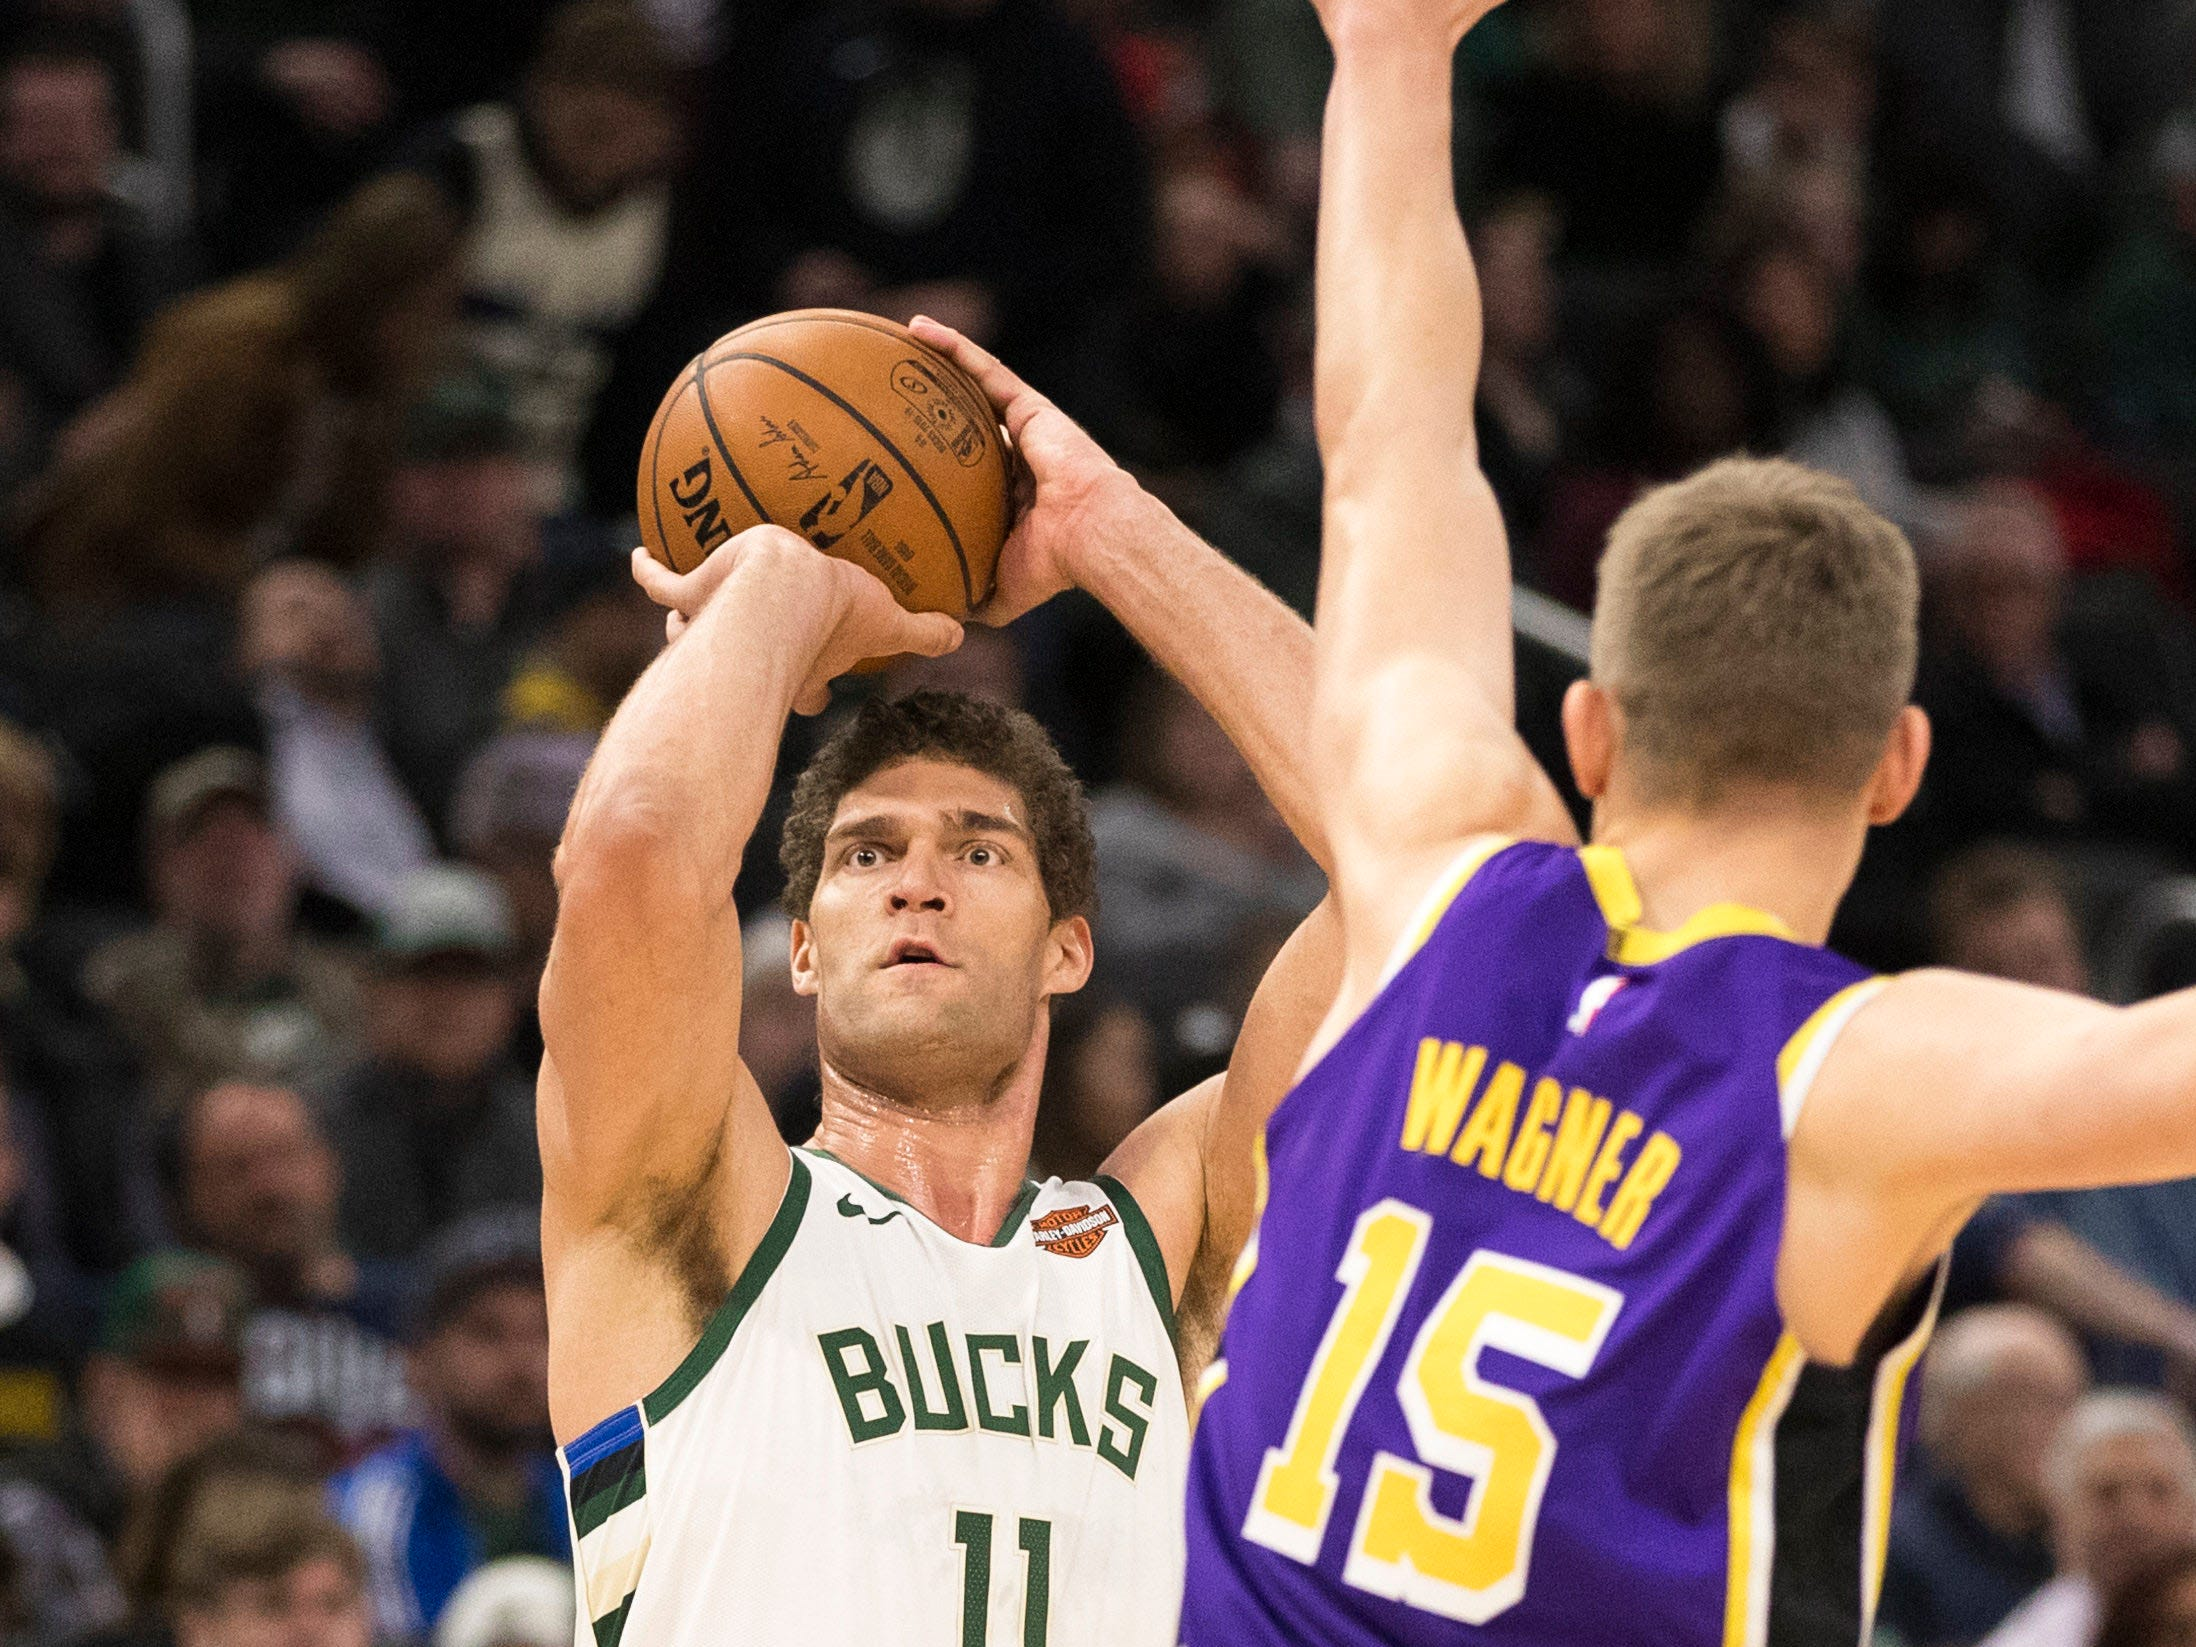 Bucks center Brook Lopez  shoots the ball over Moritz Wagner. Lopez finished with 28 points.